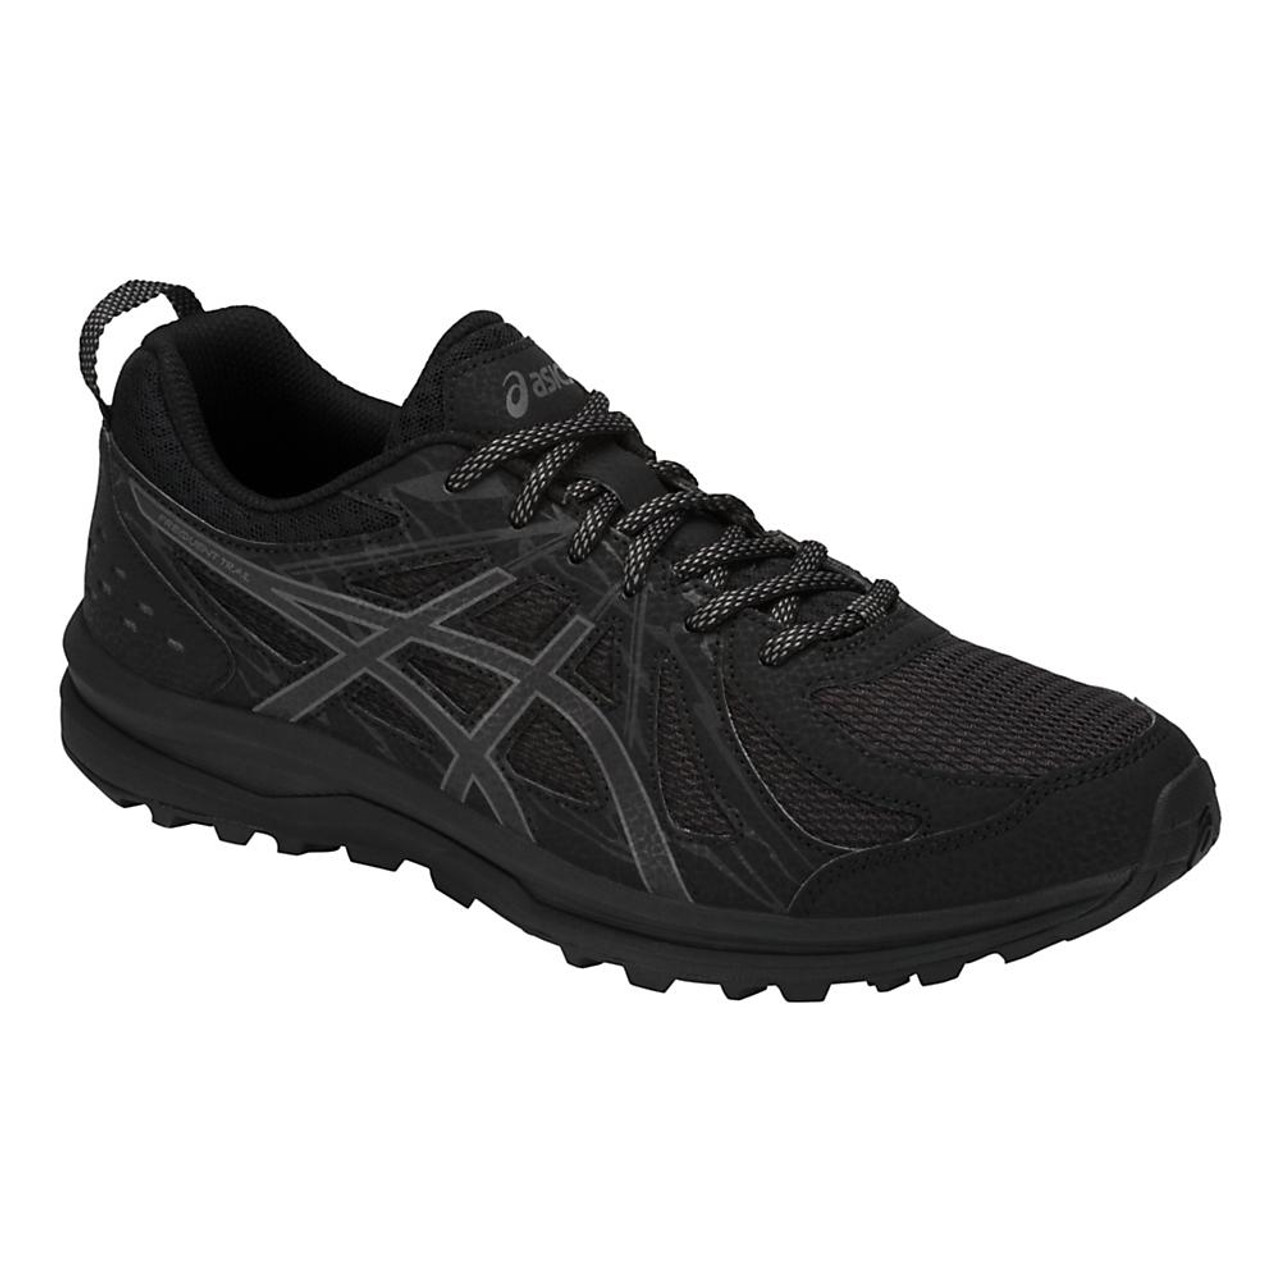 Men's ASICS Frequent Trail | Free Shipping